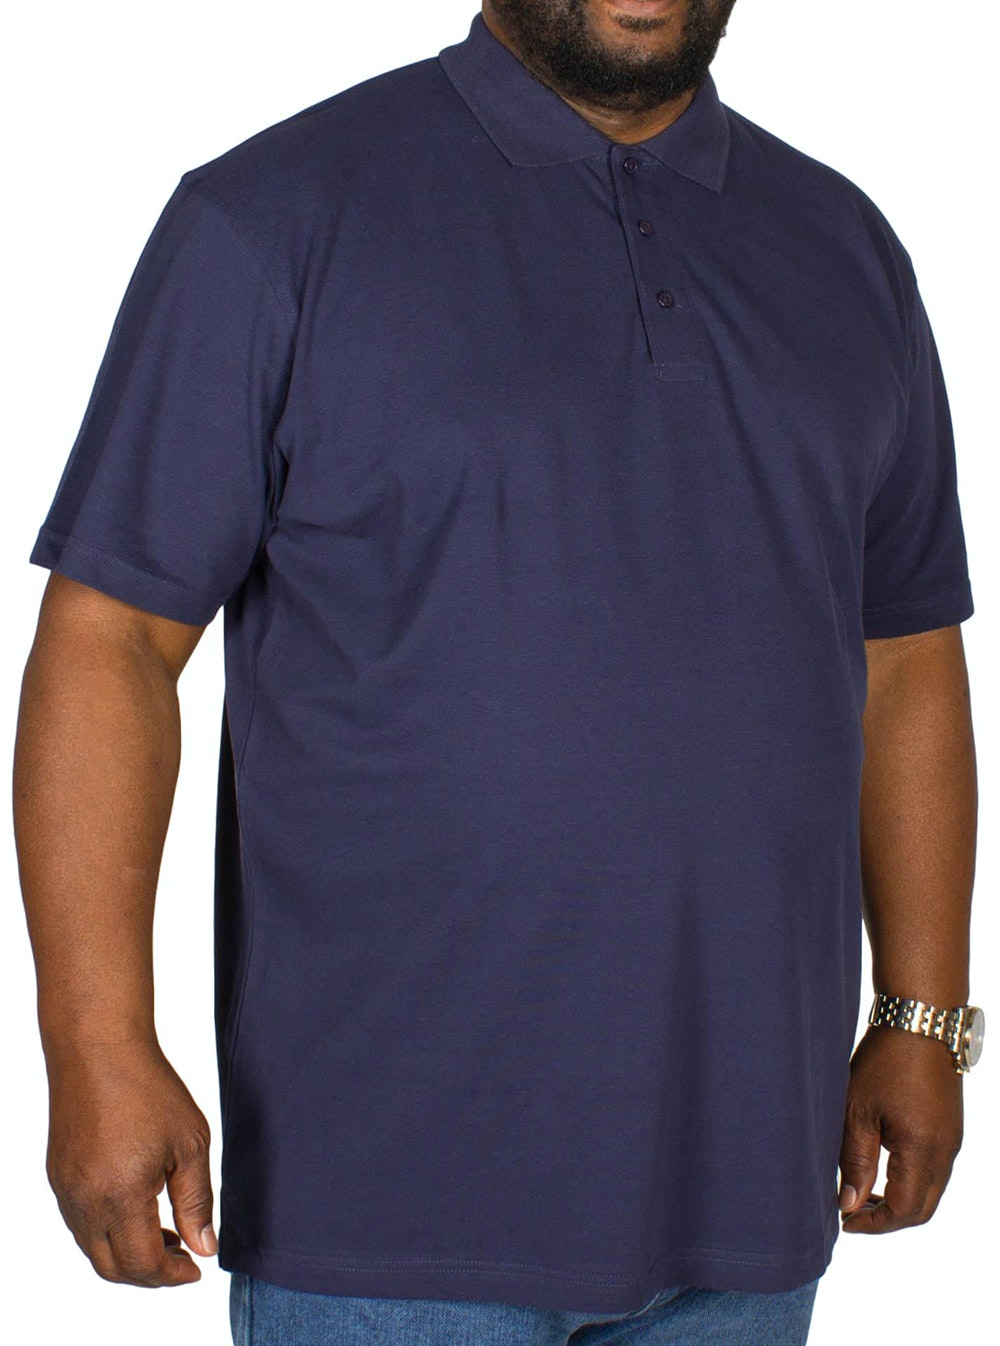 Bigdude Plain Polo Shirt- Navy